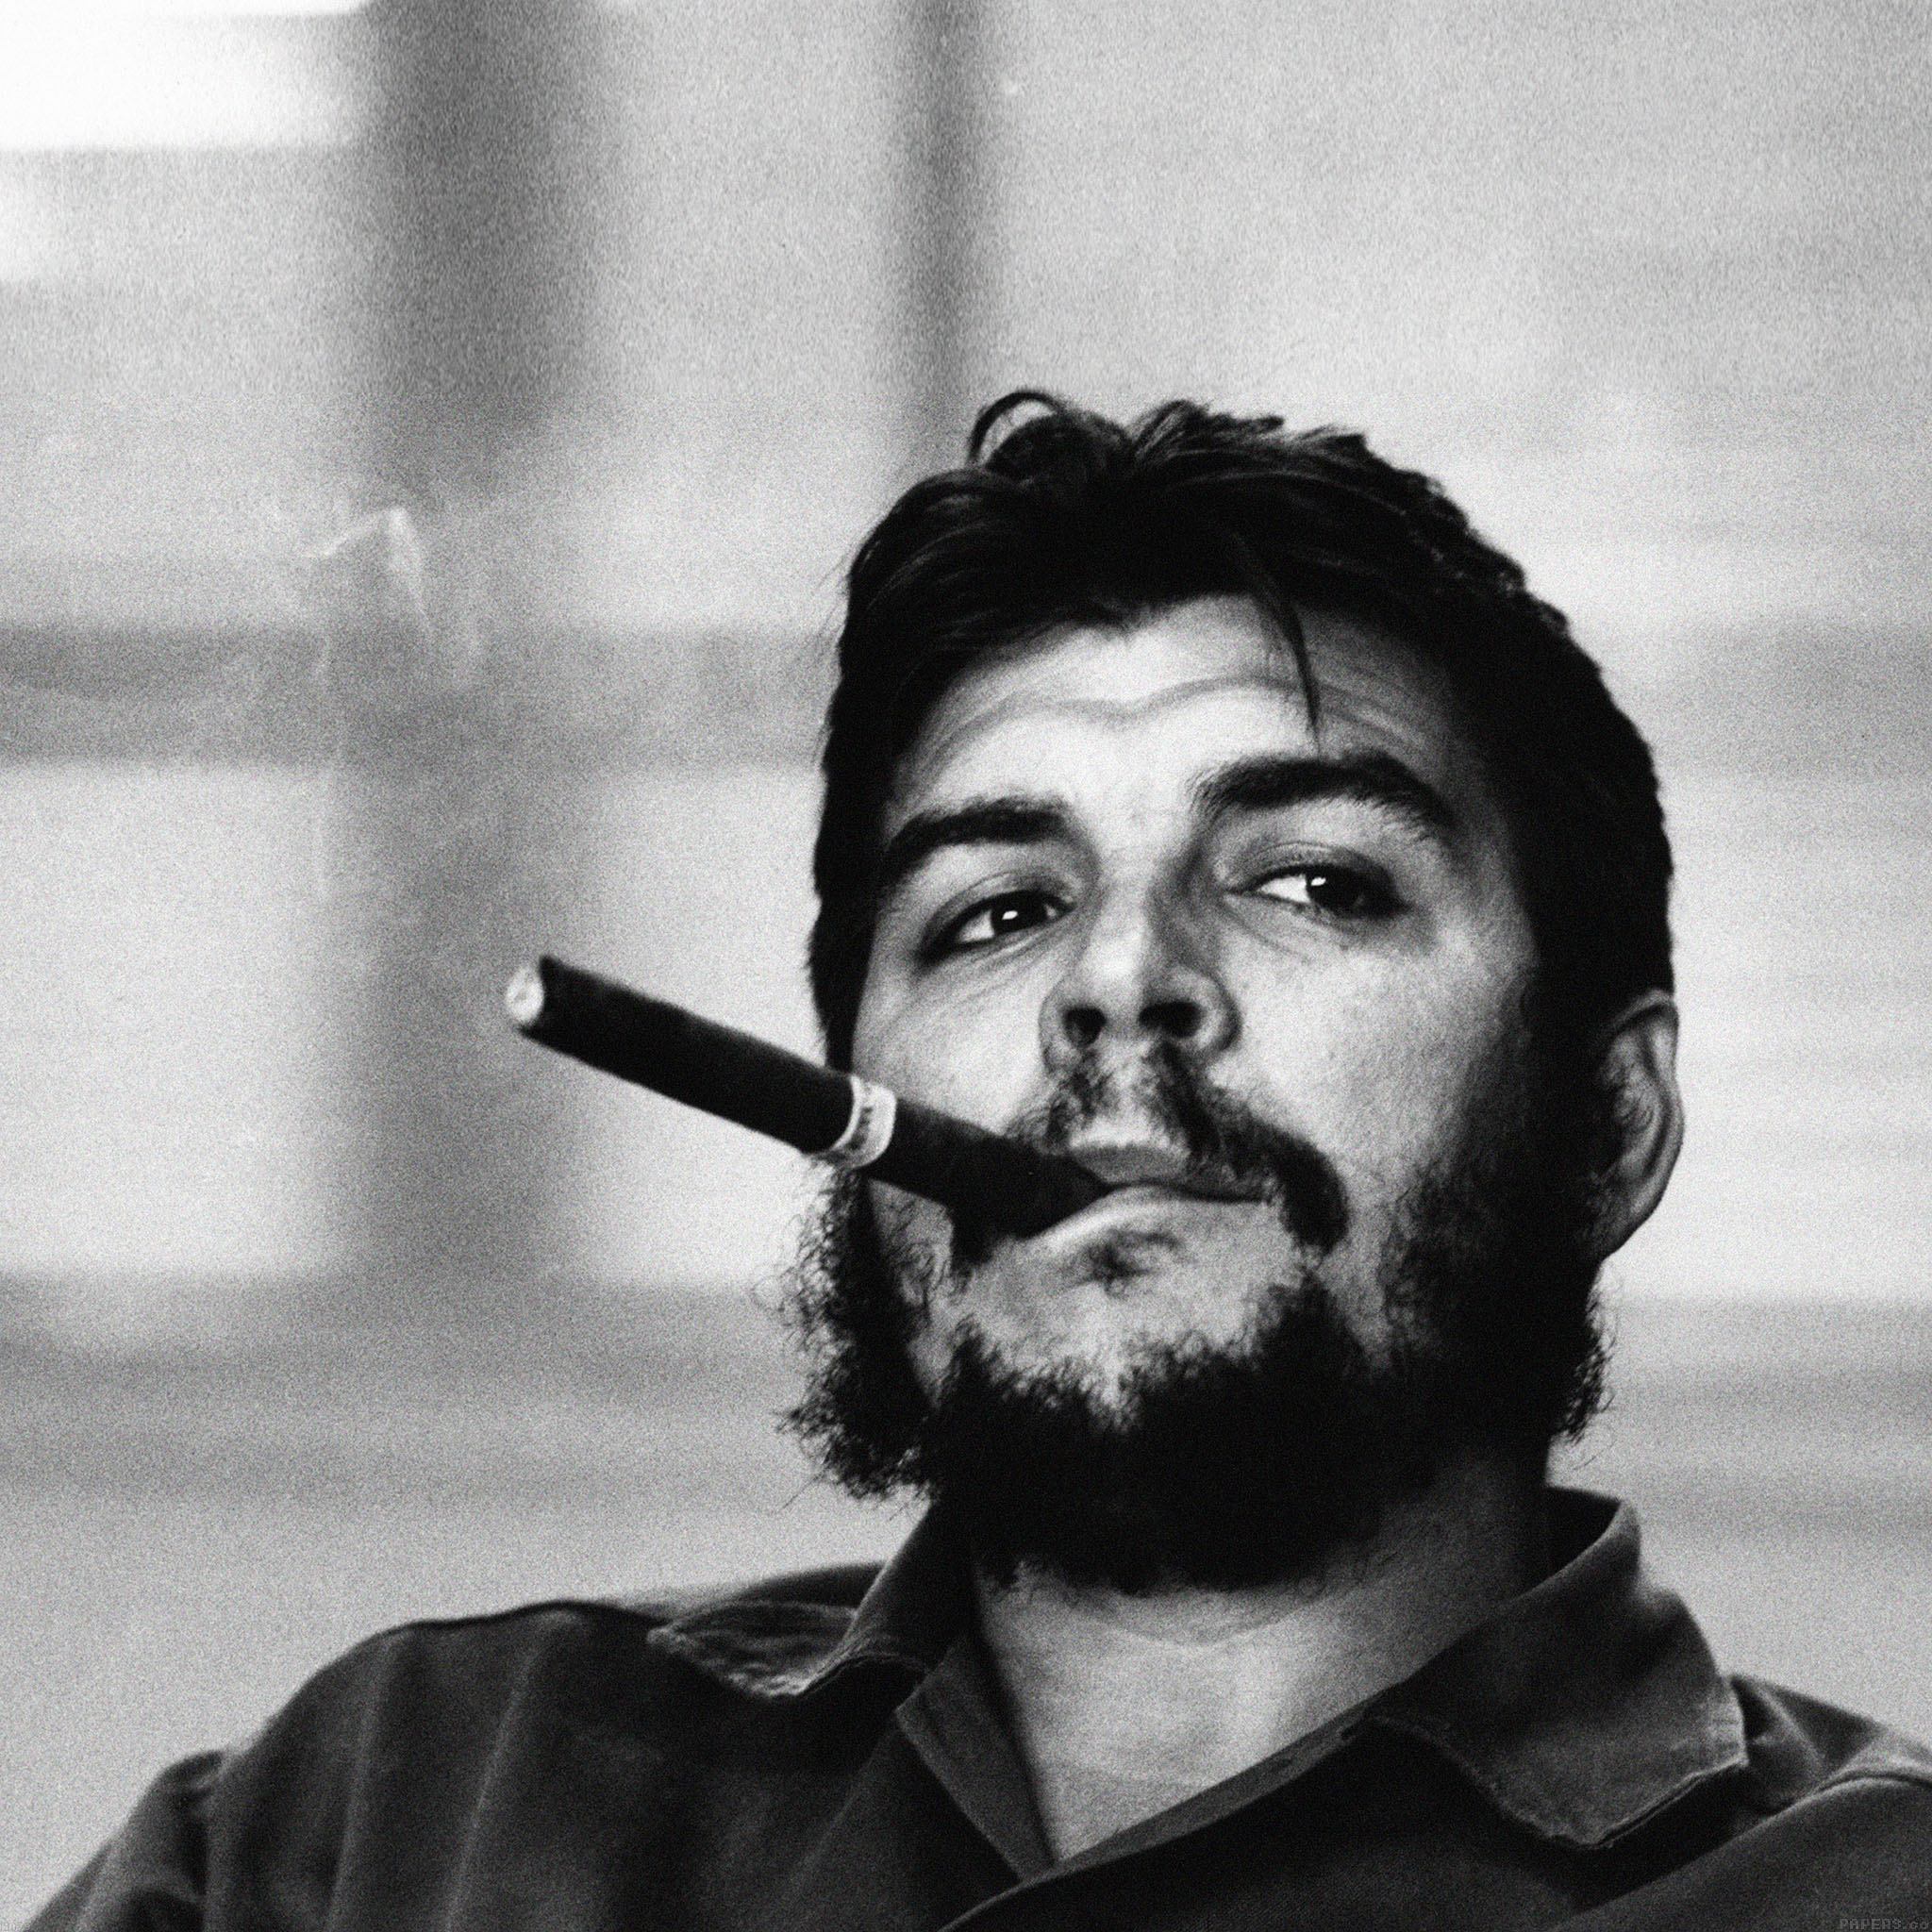 ha79-wallpaper-che-guevara-face - Papers.co